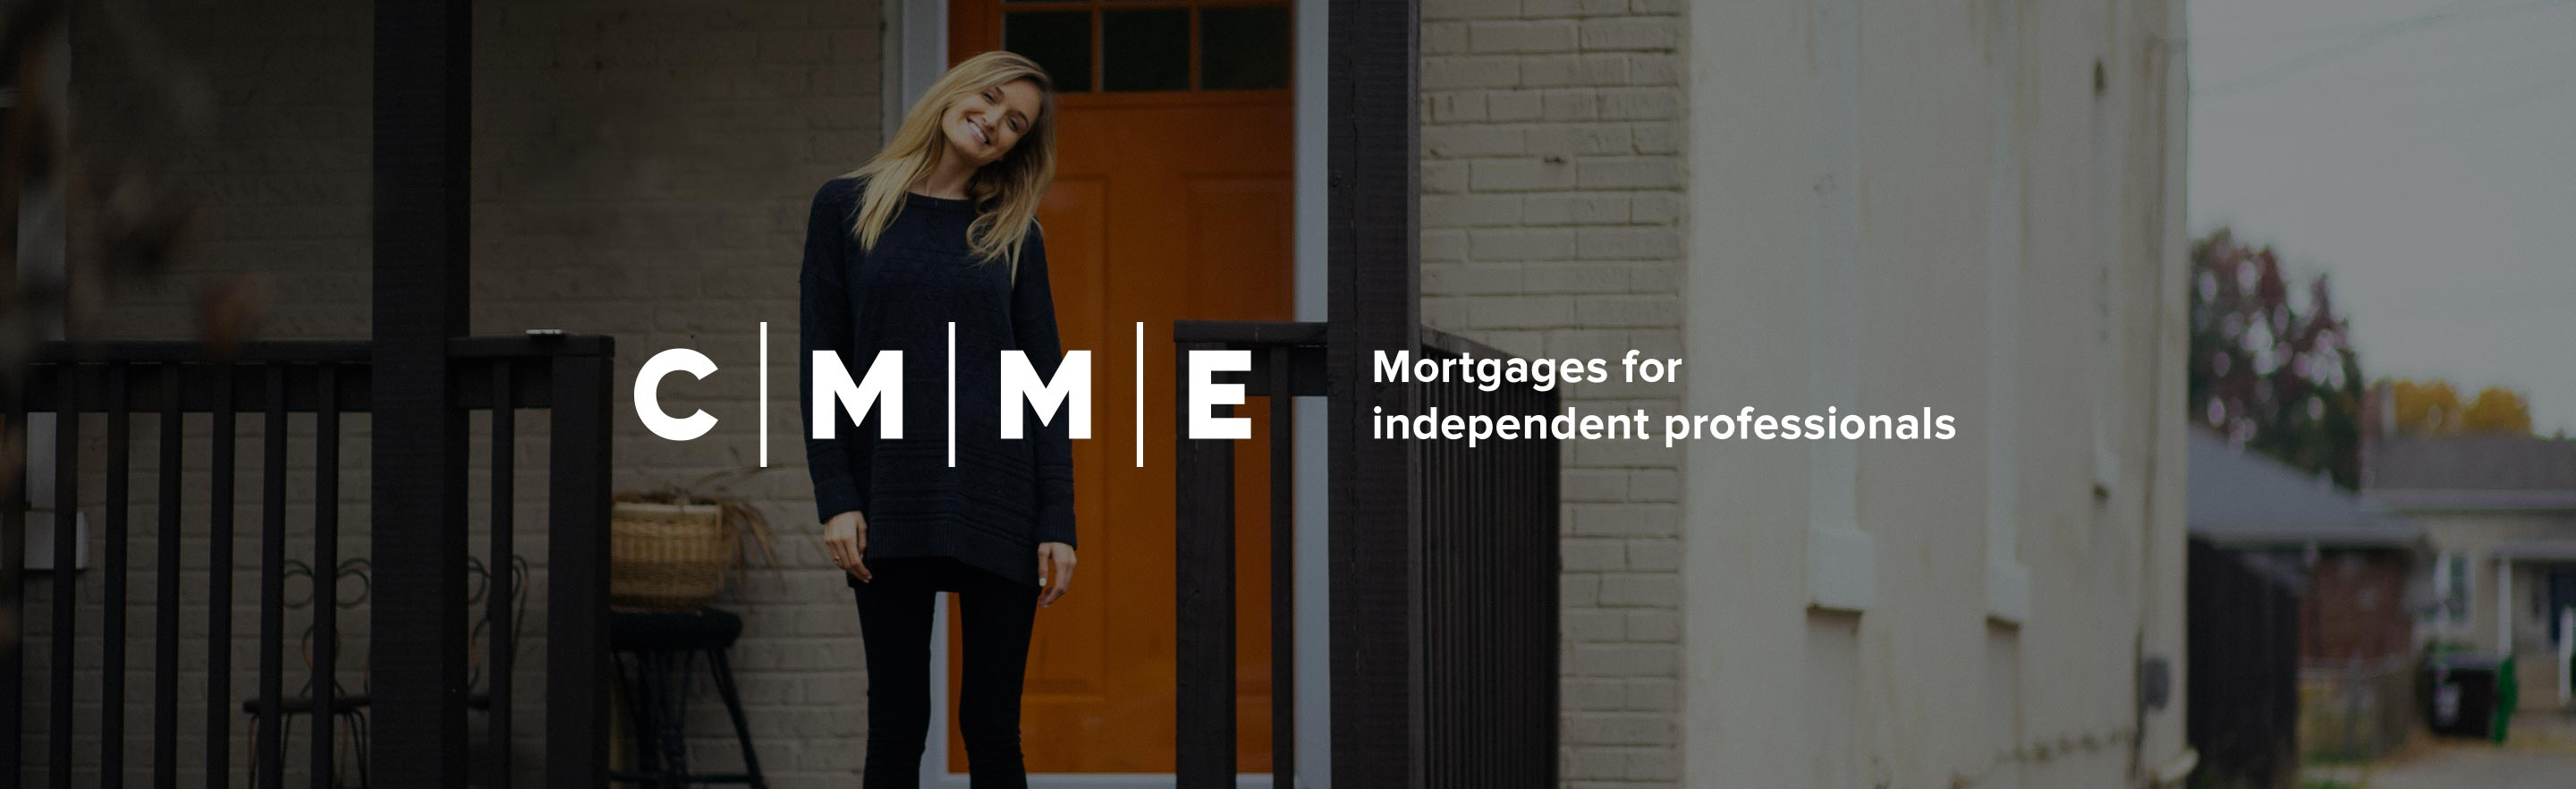 self employed mortgage - CMME